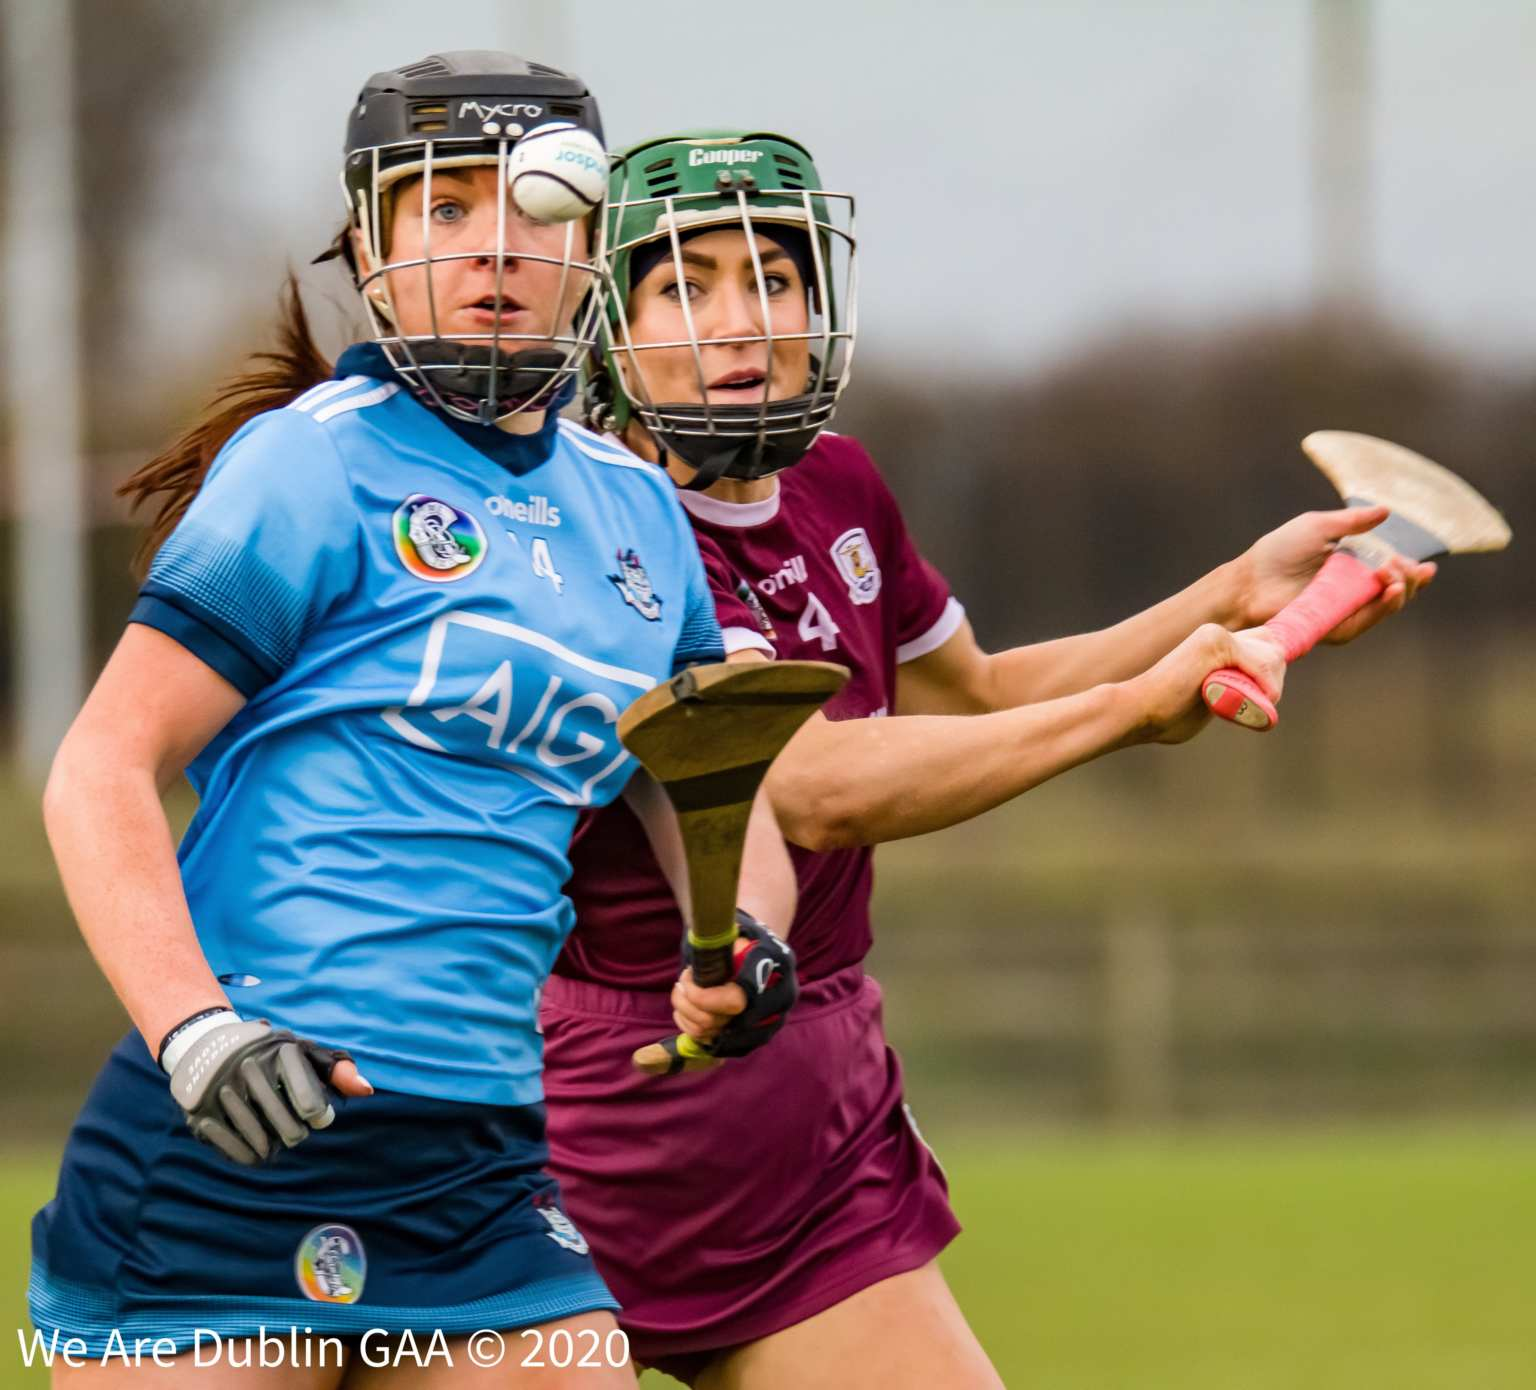 A Dublin And Galway Camogie Player battling for the ball during their opening round league encounter, reigning champions Galway were made to work hard for the win over a determined Dublin side.